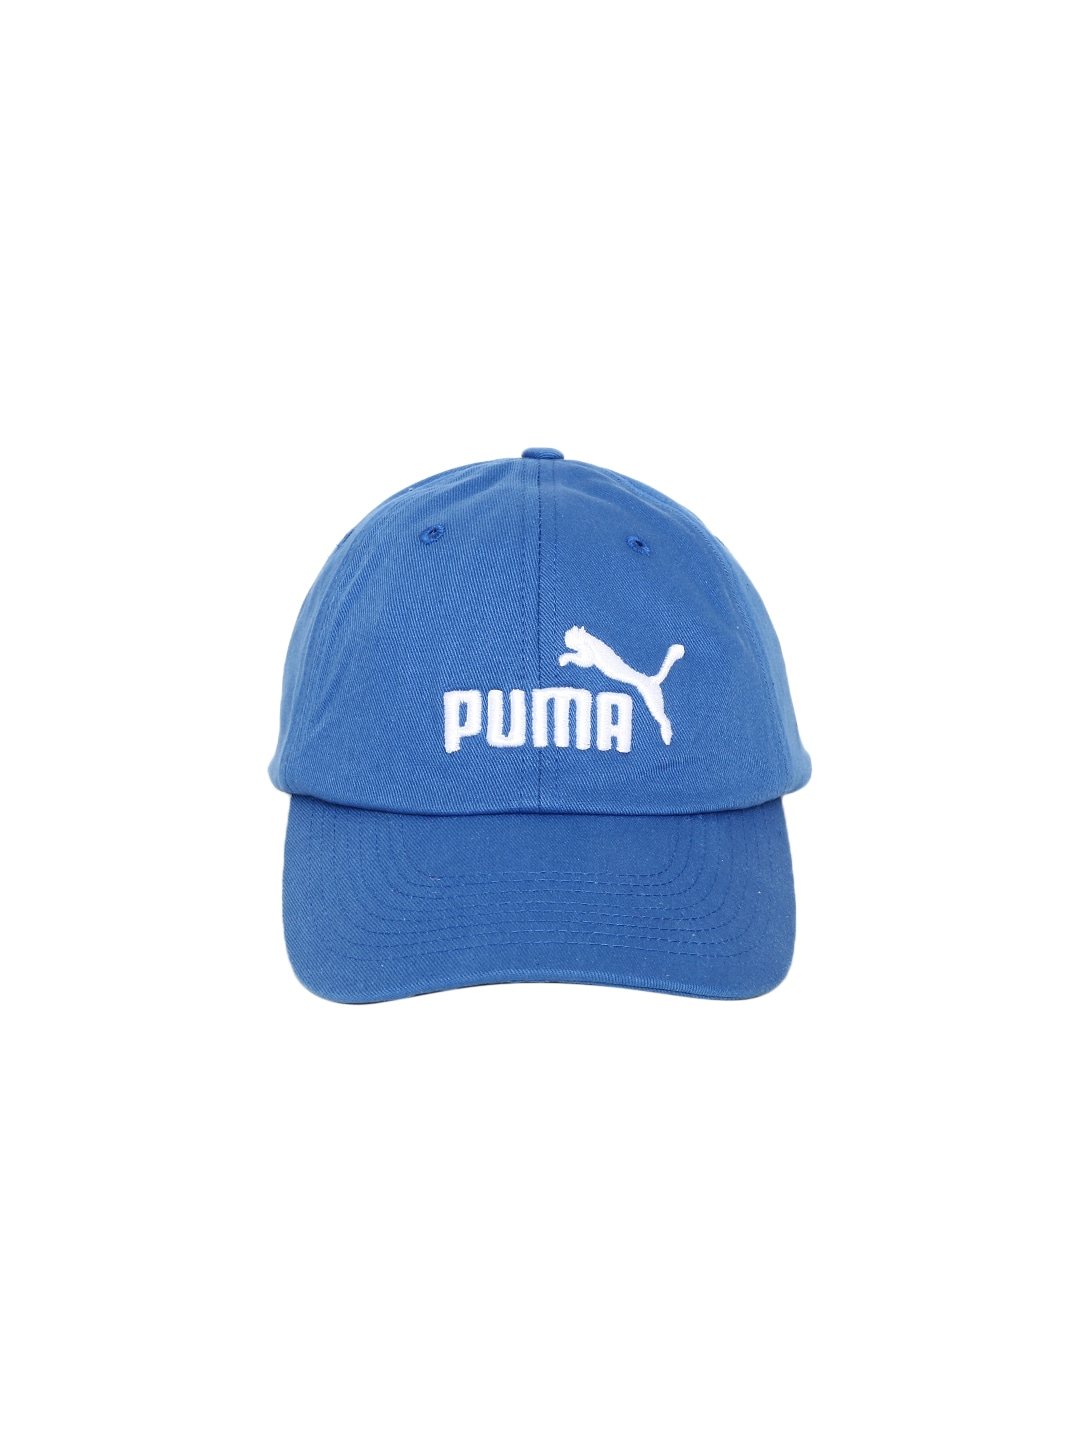 f85cd858a1b Sports Caps - Buy Sports Caps Online in India